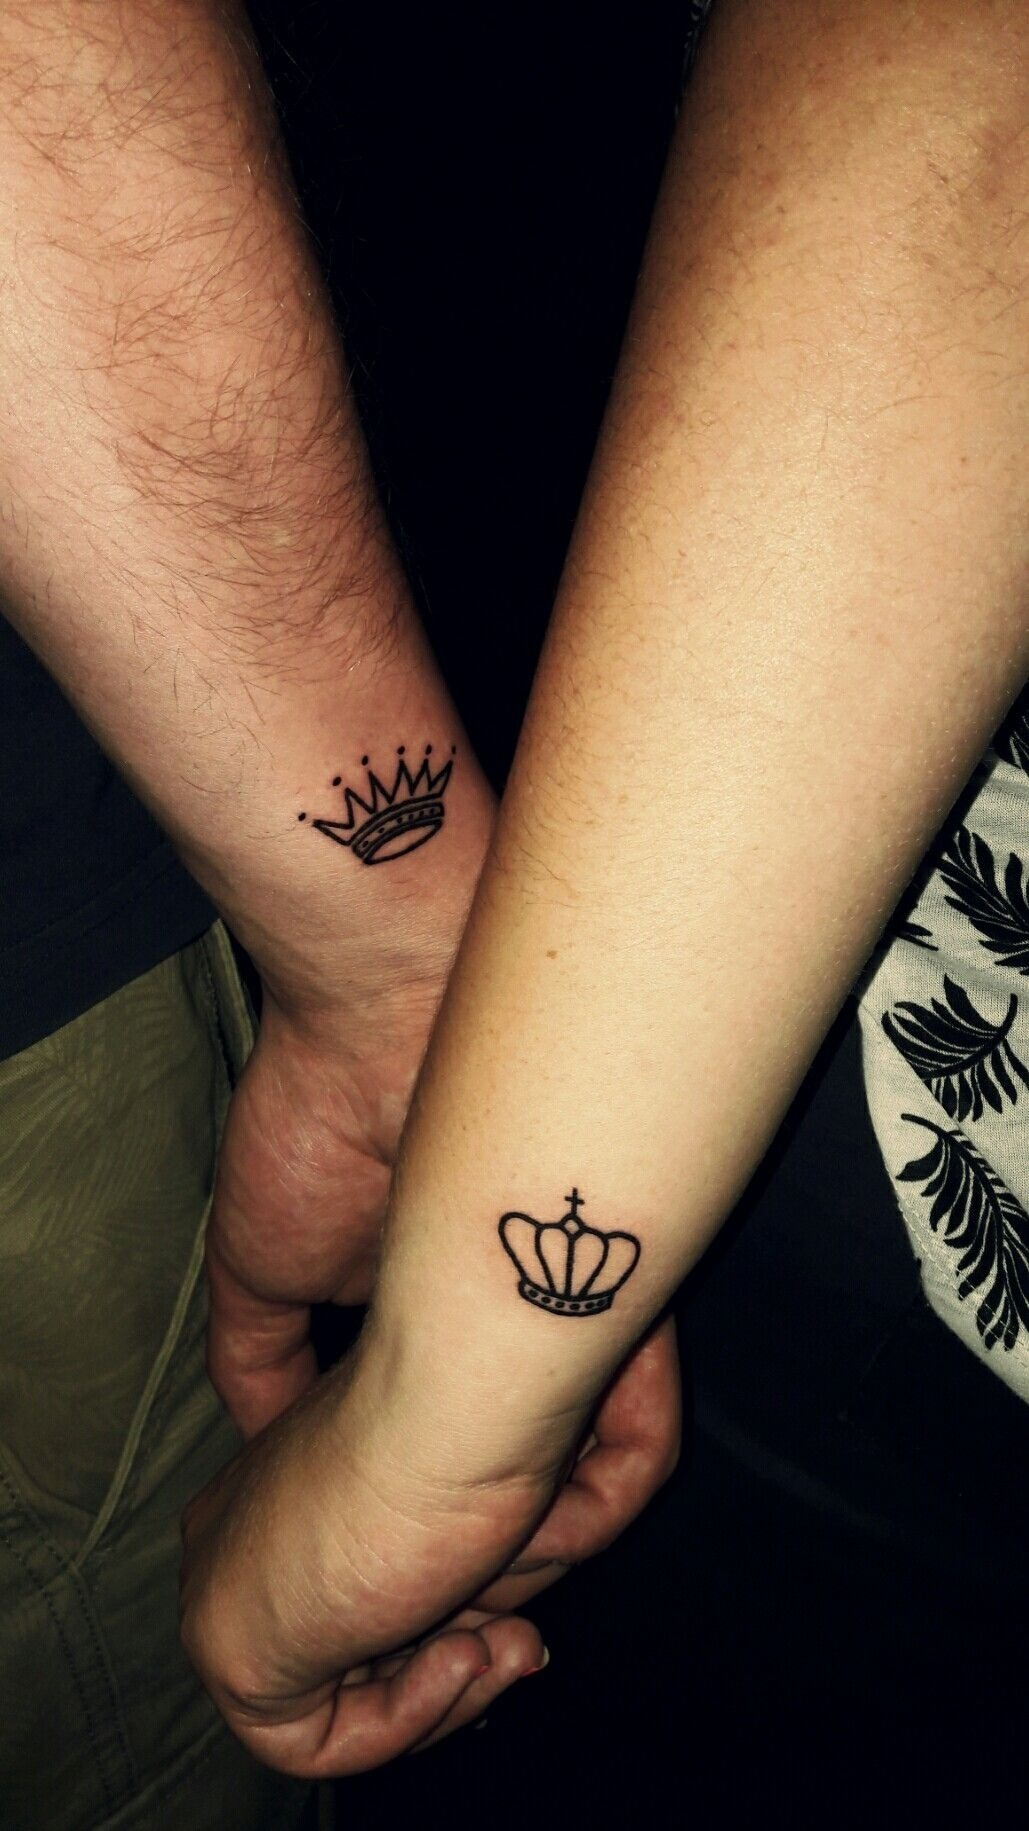 10 Most Recommended Tattoo Ideas For Couples In Love couple tattoo king and queen tattoo crown tattoo love tattoos